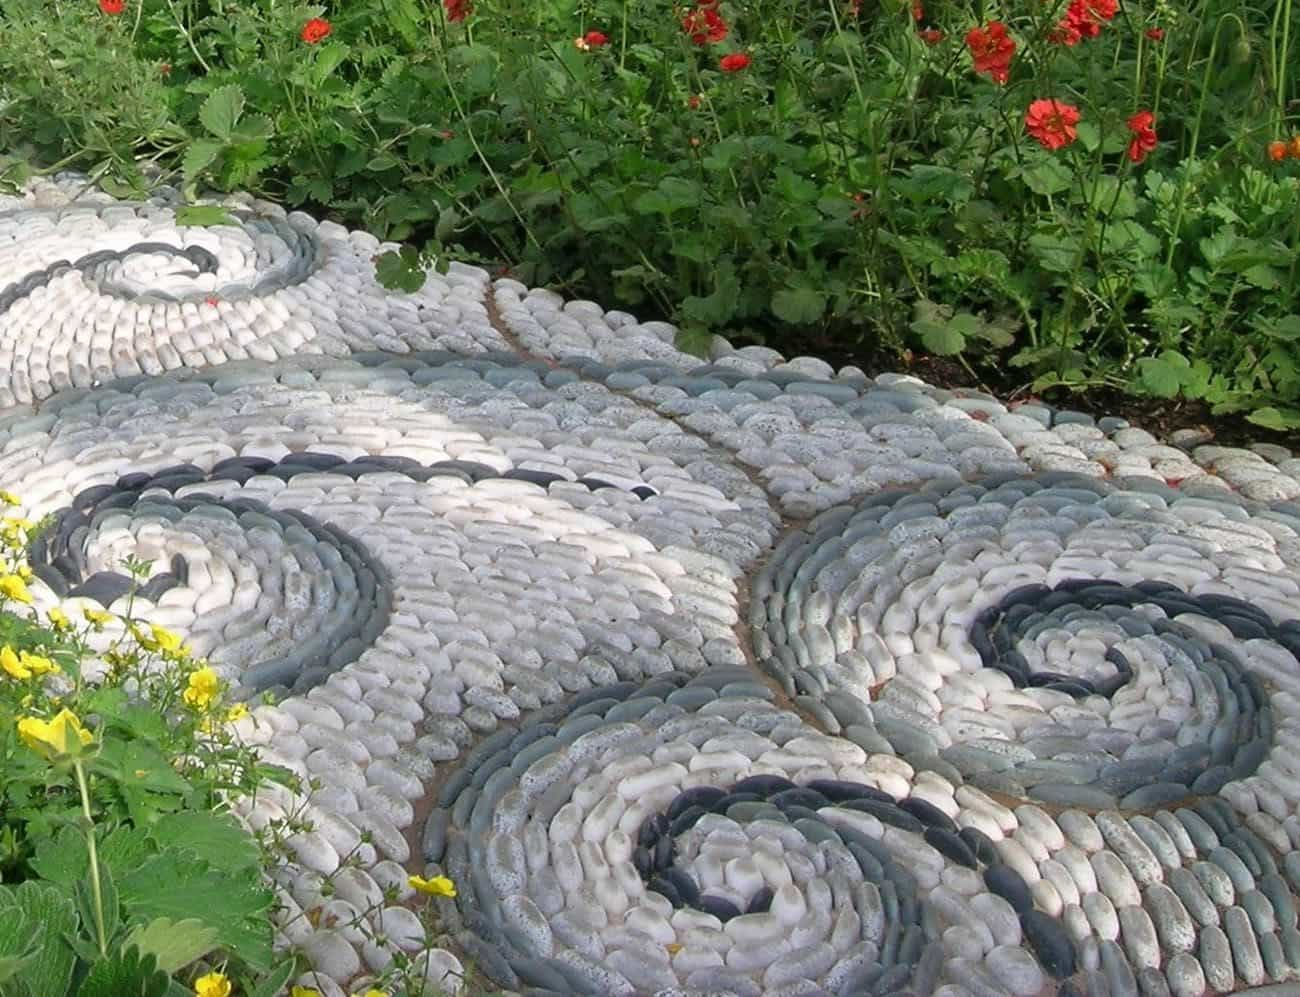 Backyard Landscaping Ideas With Pebble Path House Backyard throughout 12 Awesome Ways How to Build Great Backyard Landscaping Ideas